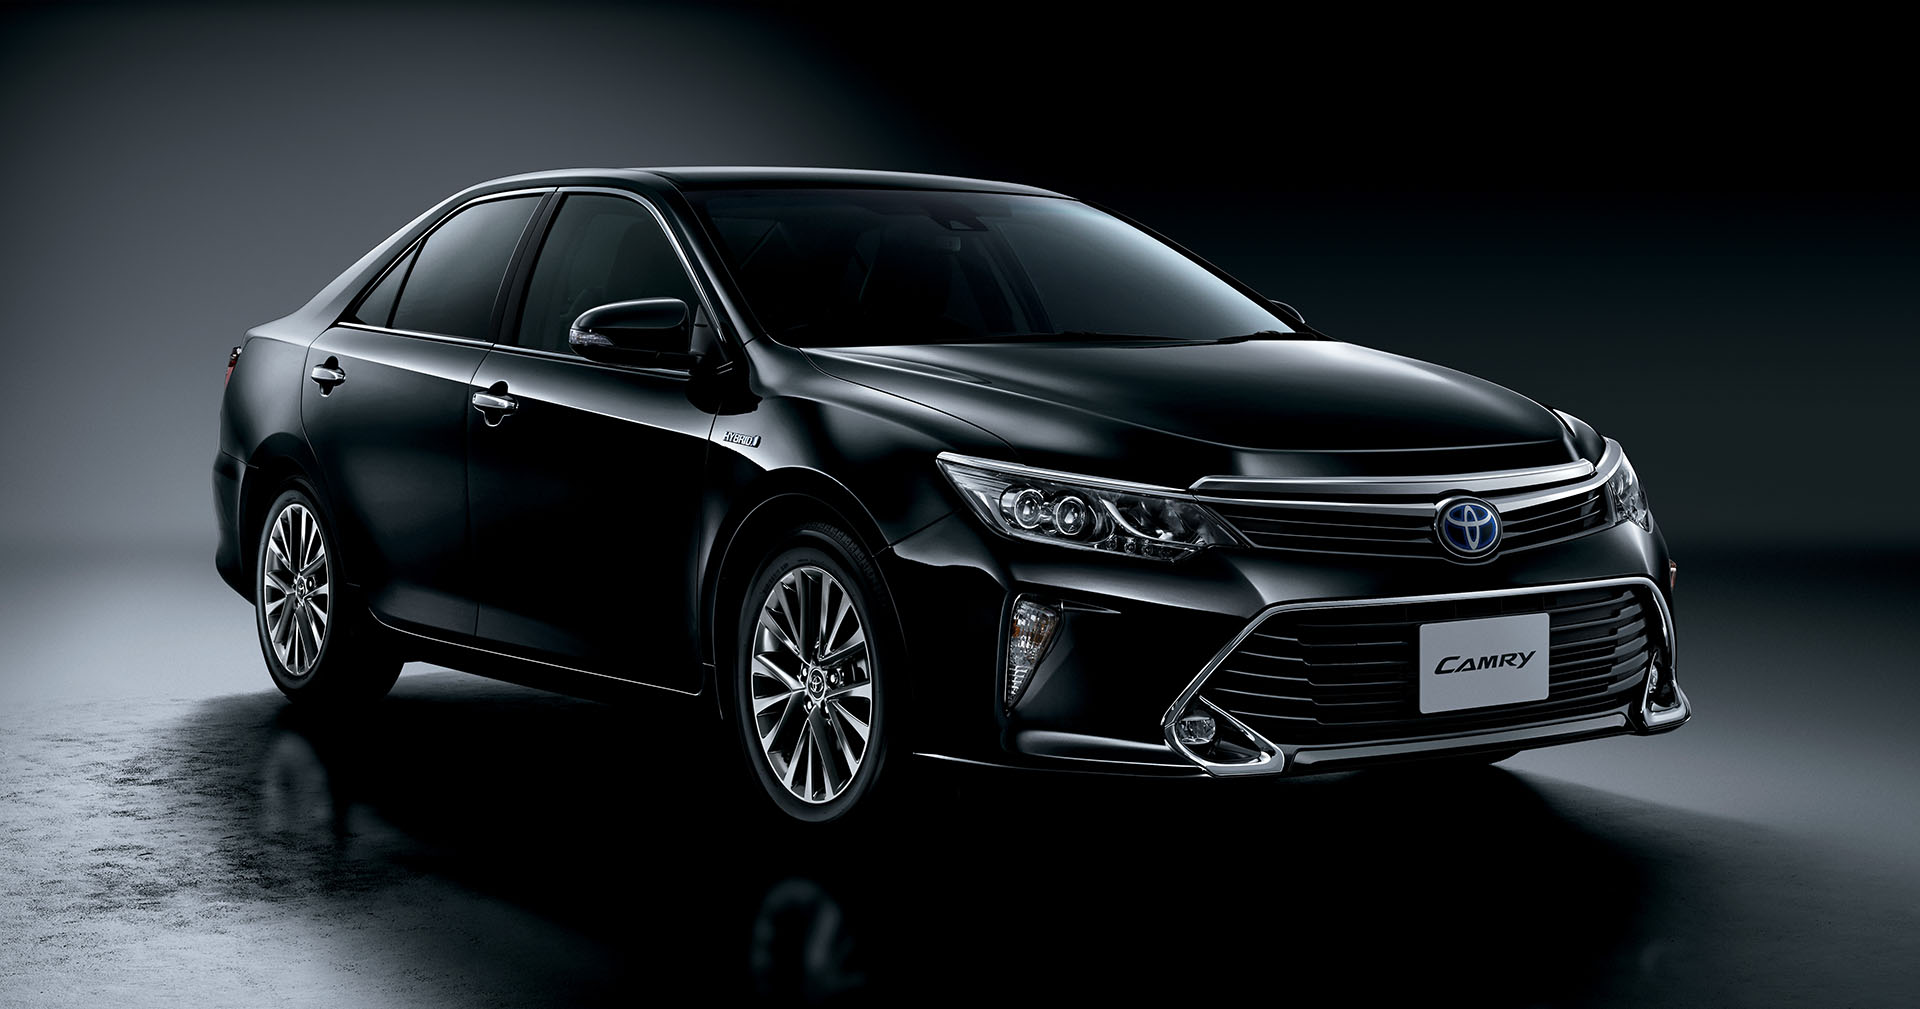 2015 toyota camry gets led headlights and woodgrain trim in japan autoevolution